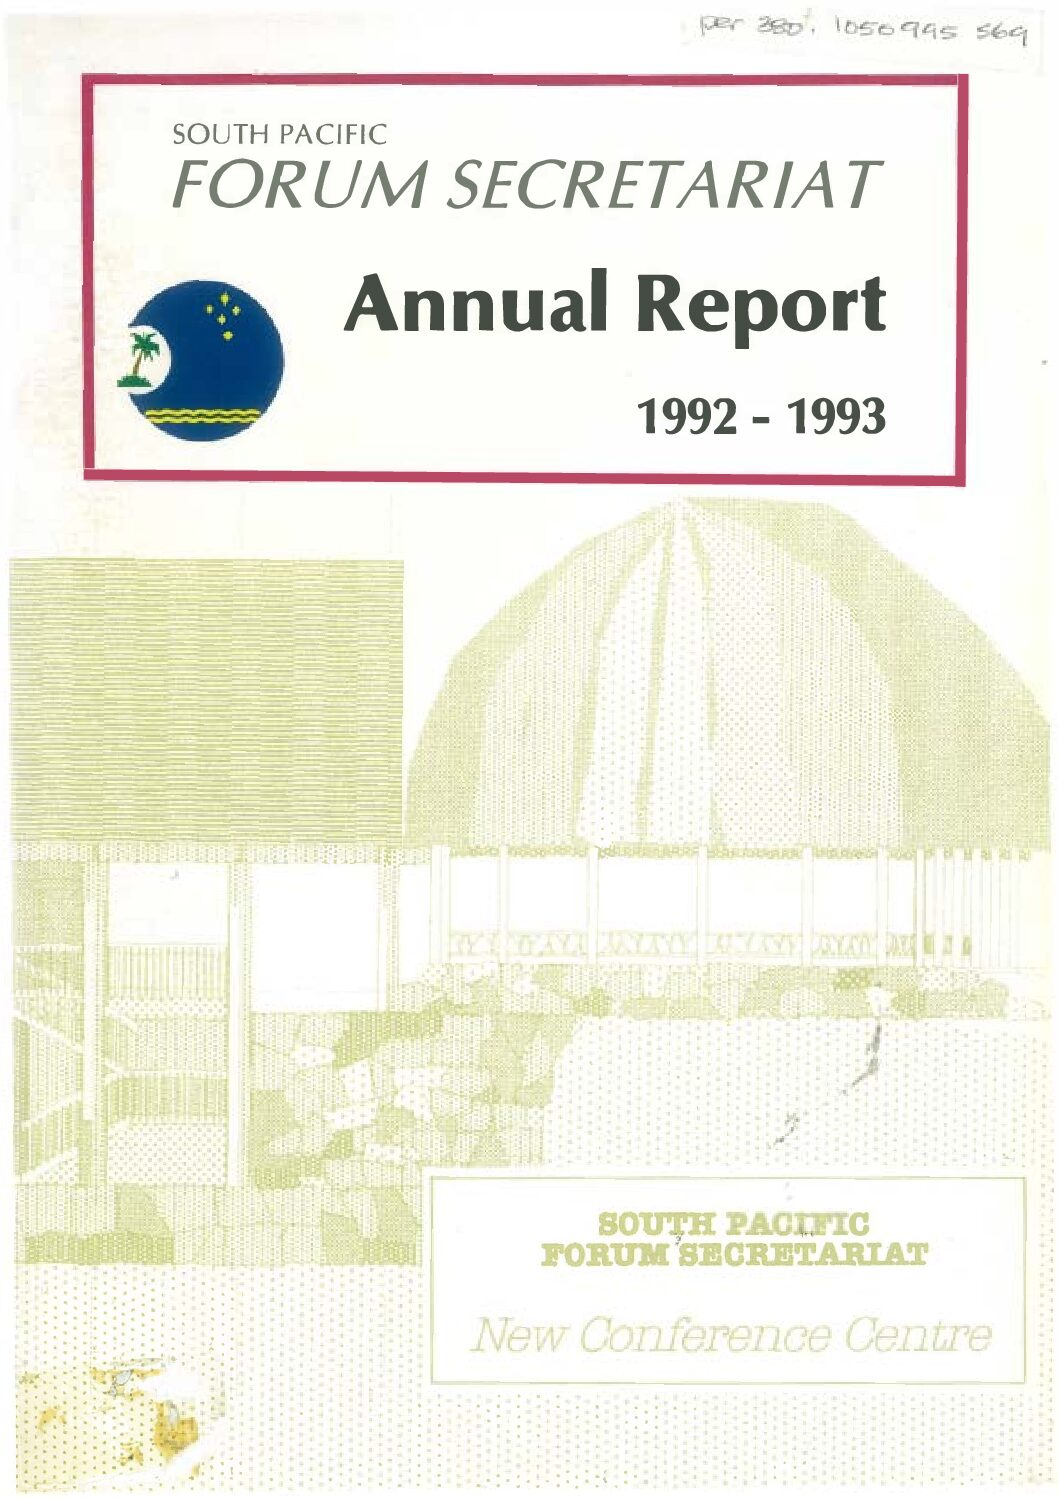 thumbnail of 1992-1993 annual report